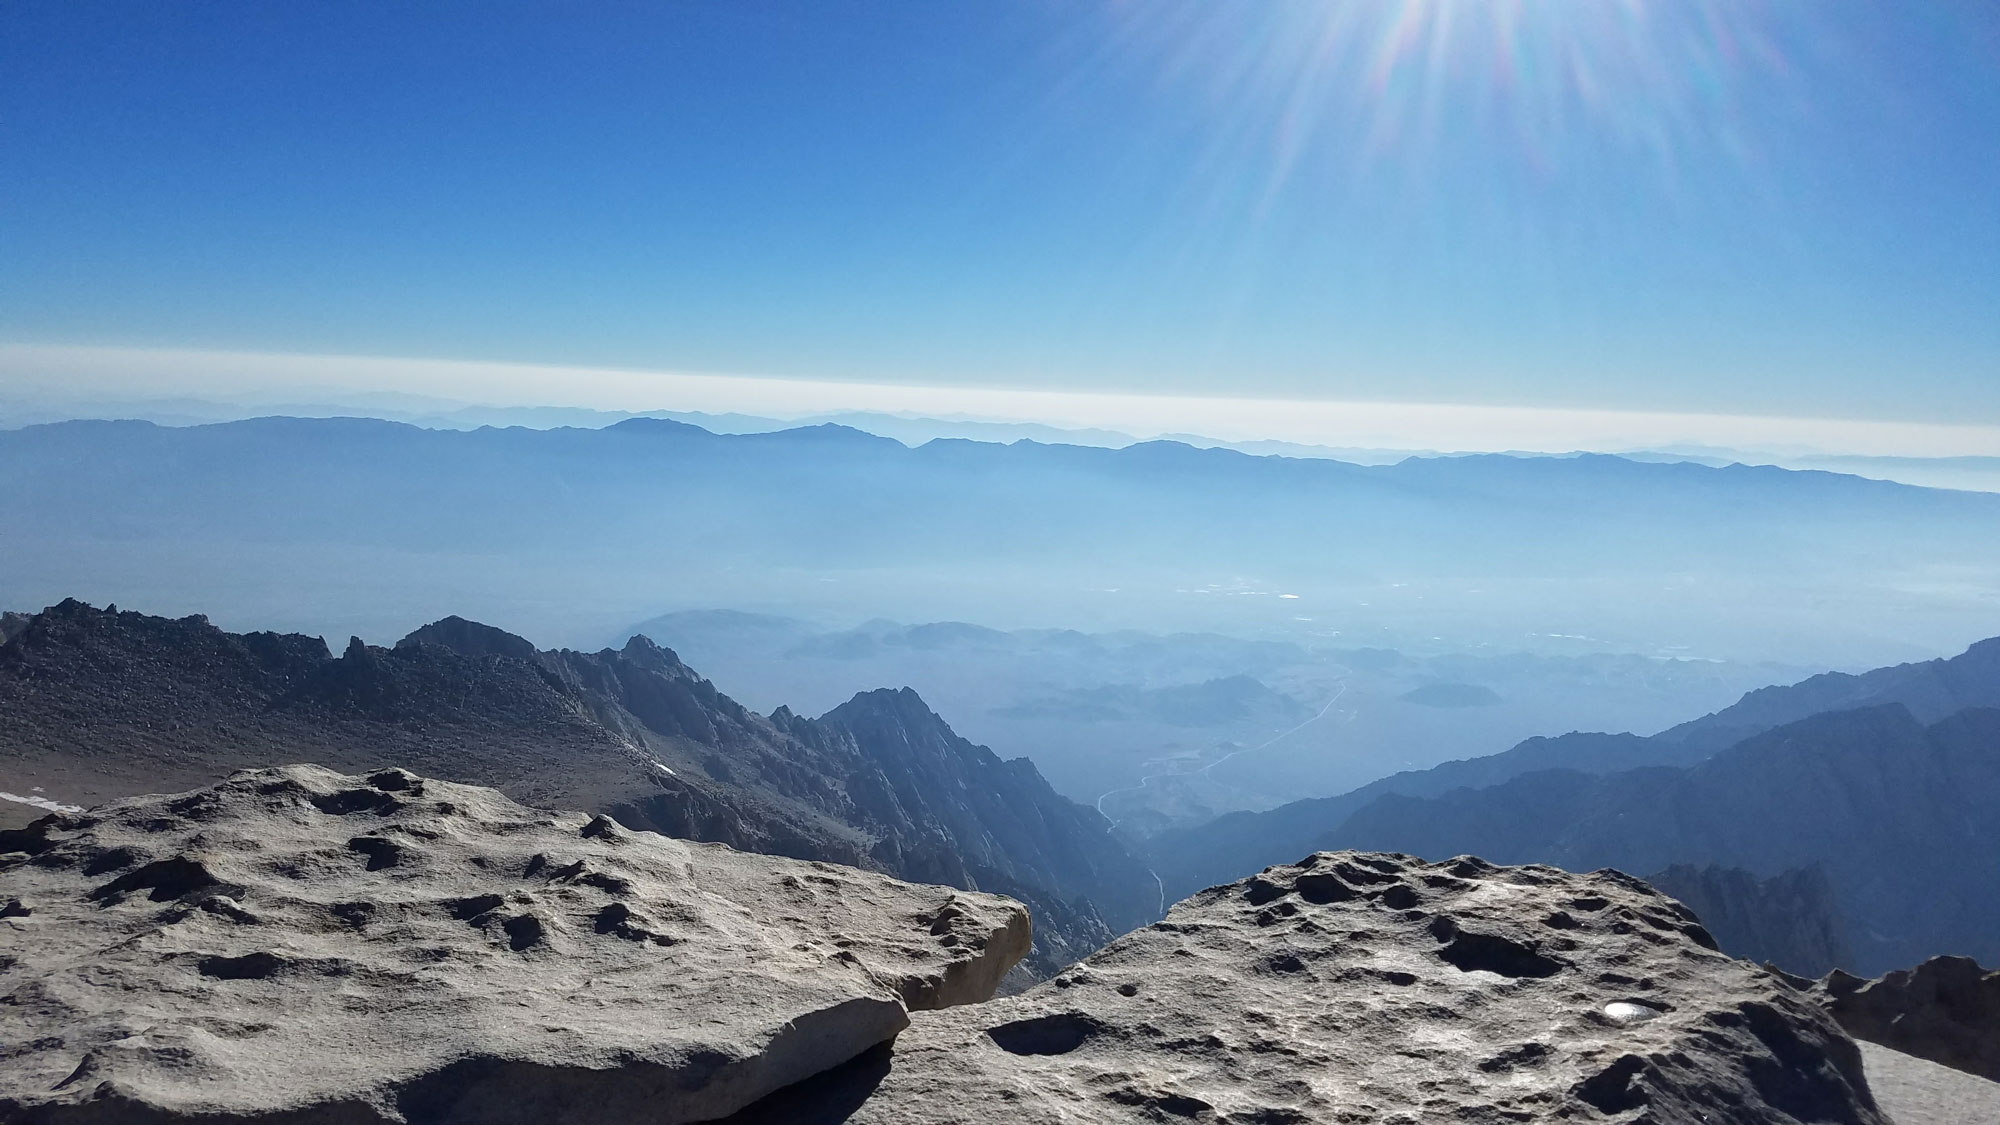 View from summit of Mt. Whitney